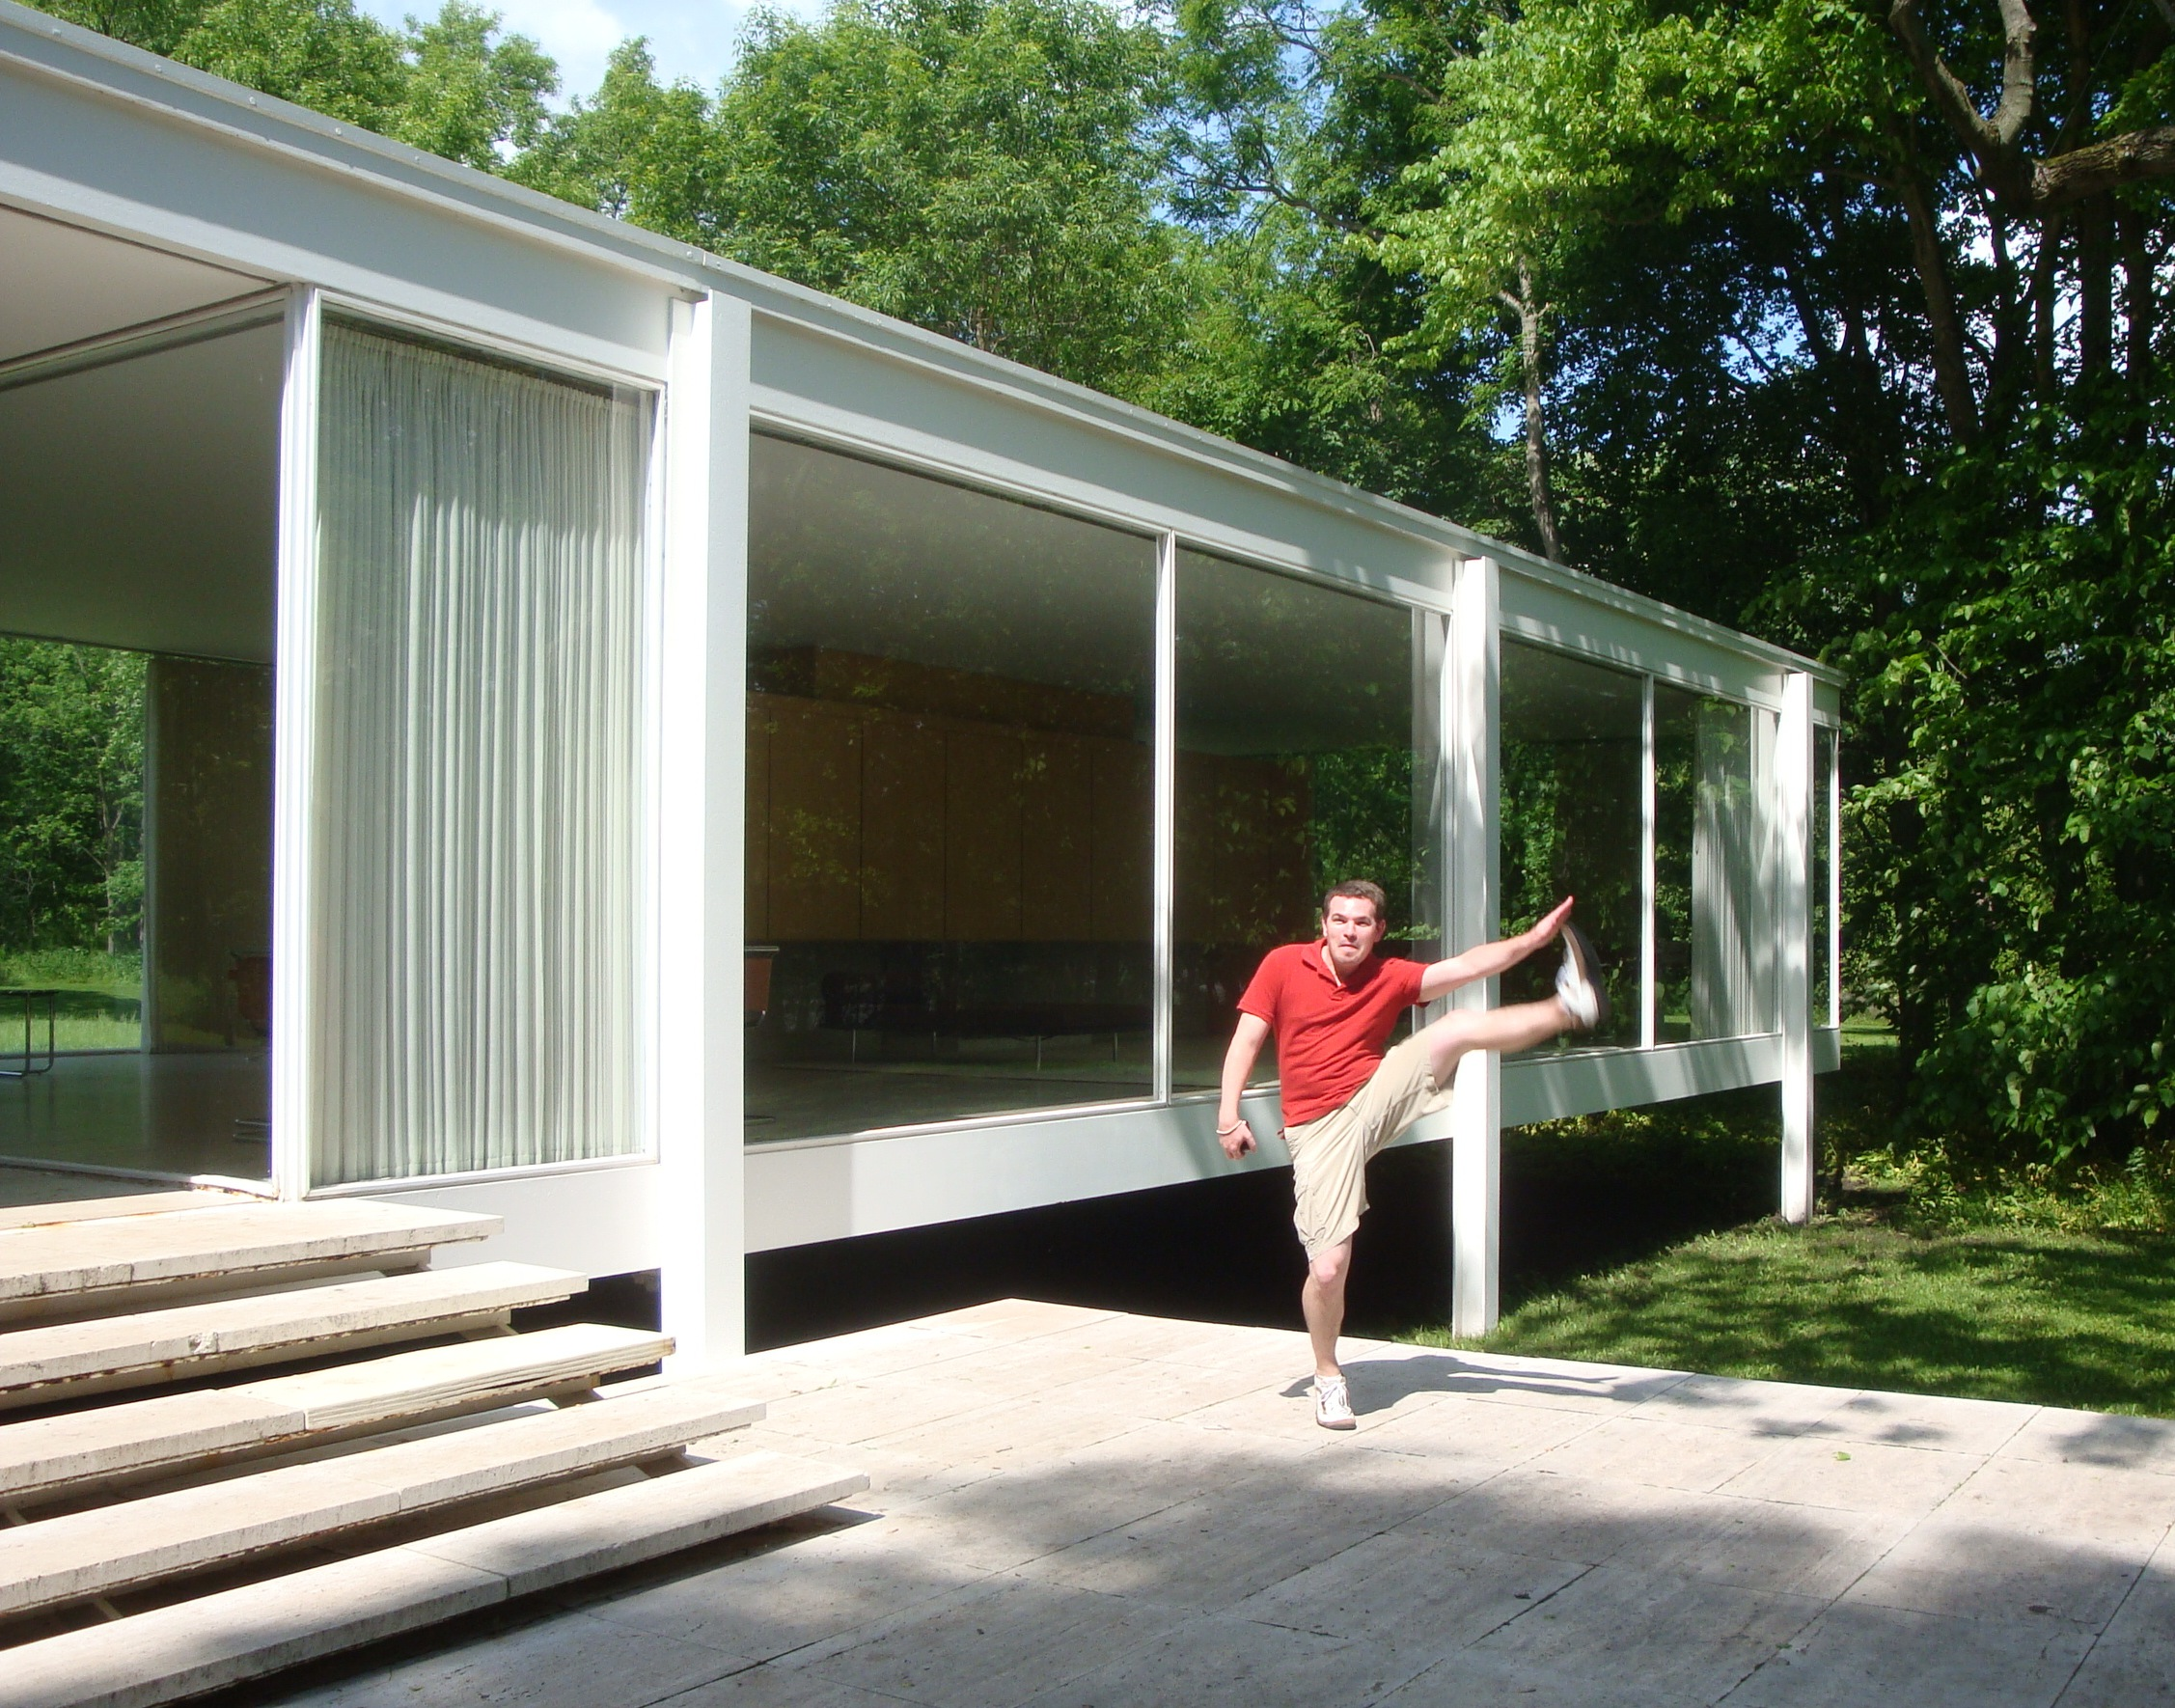 Kick of the week farnsworth house plano il for The farnsworth